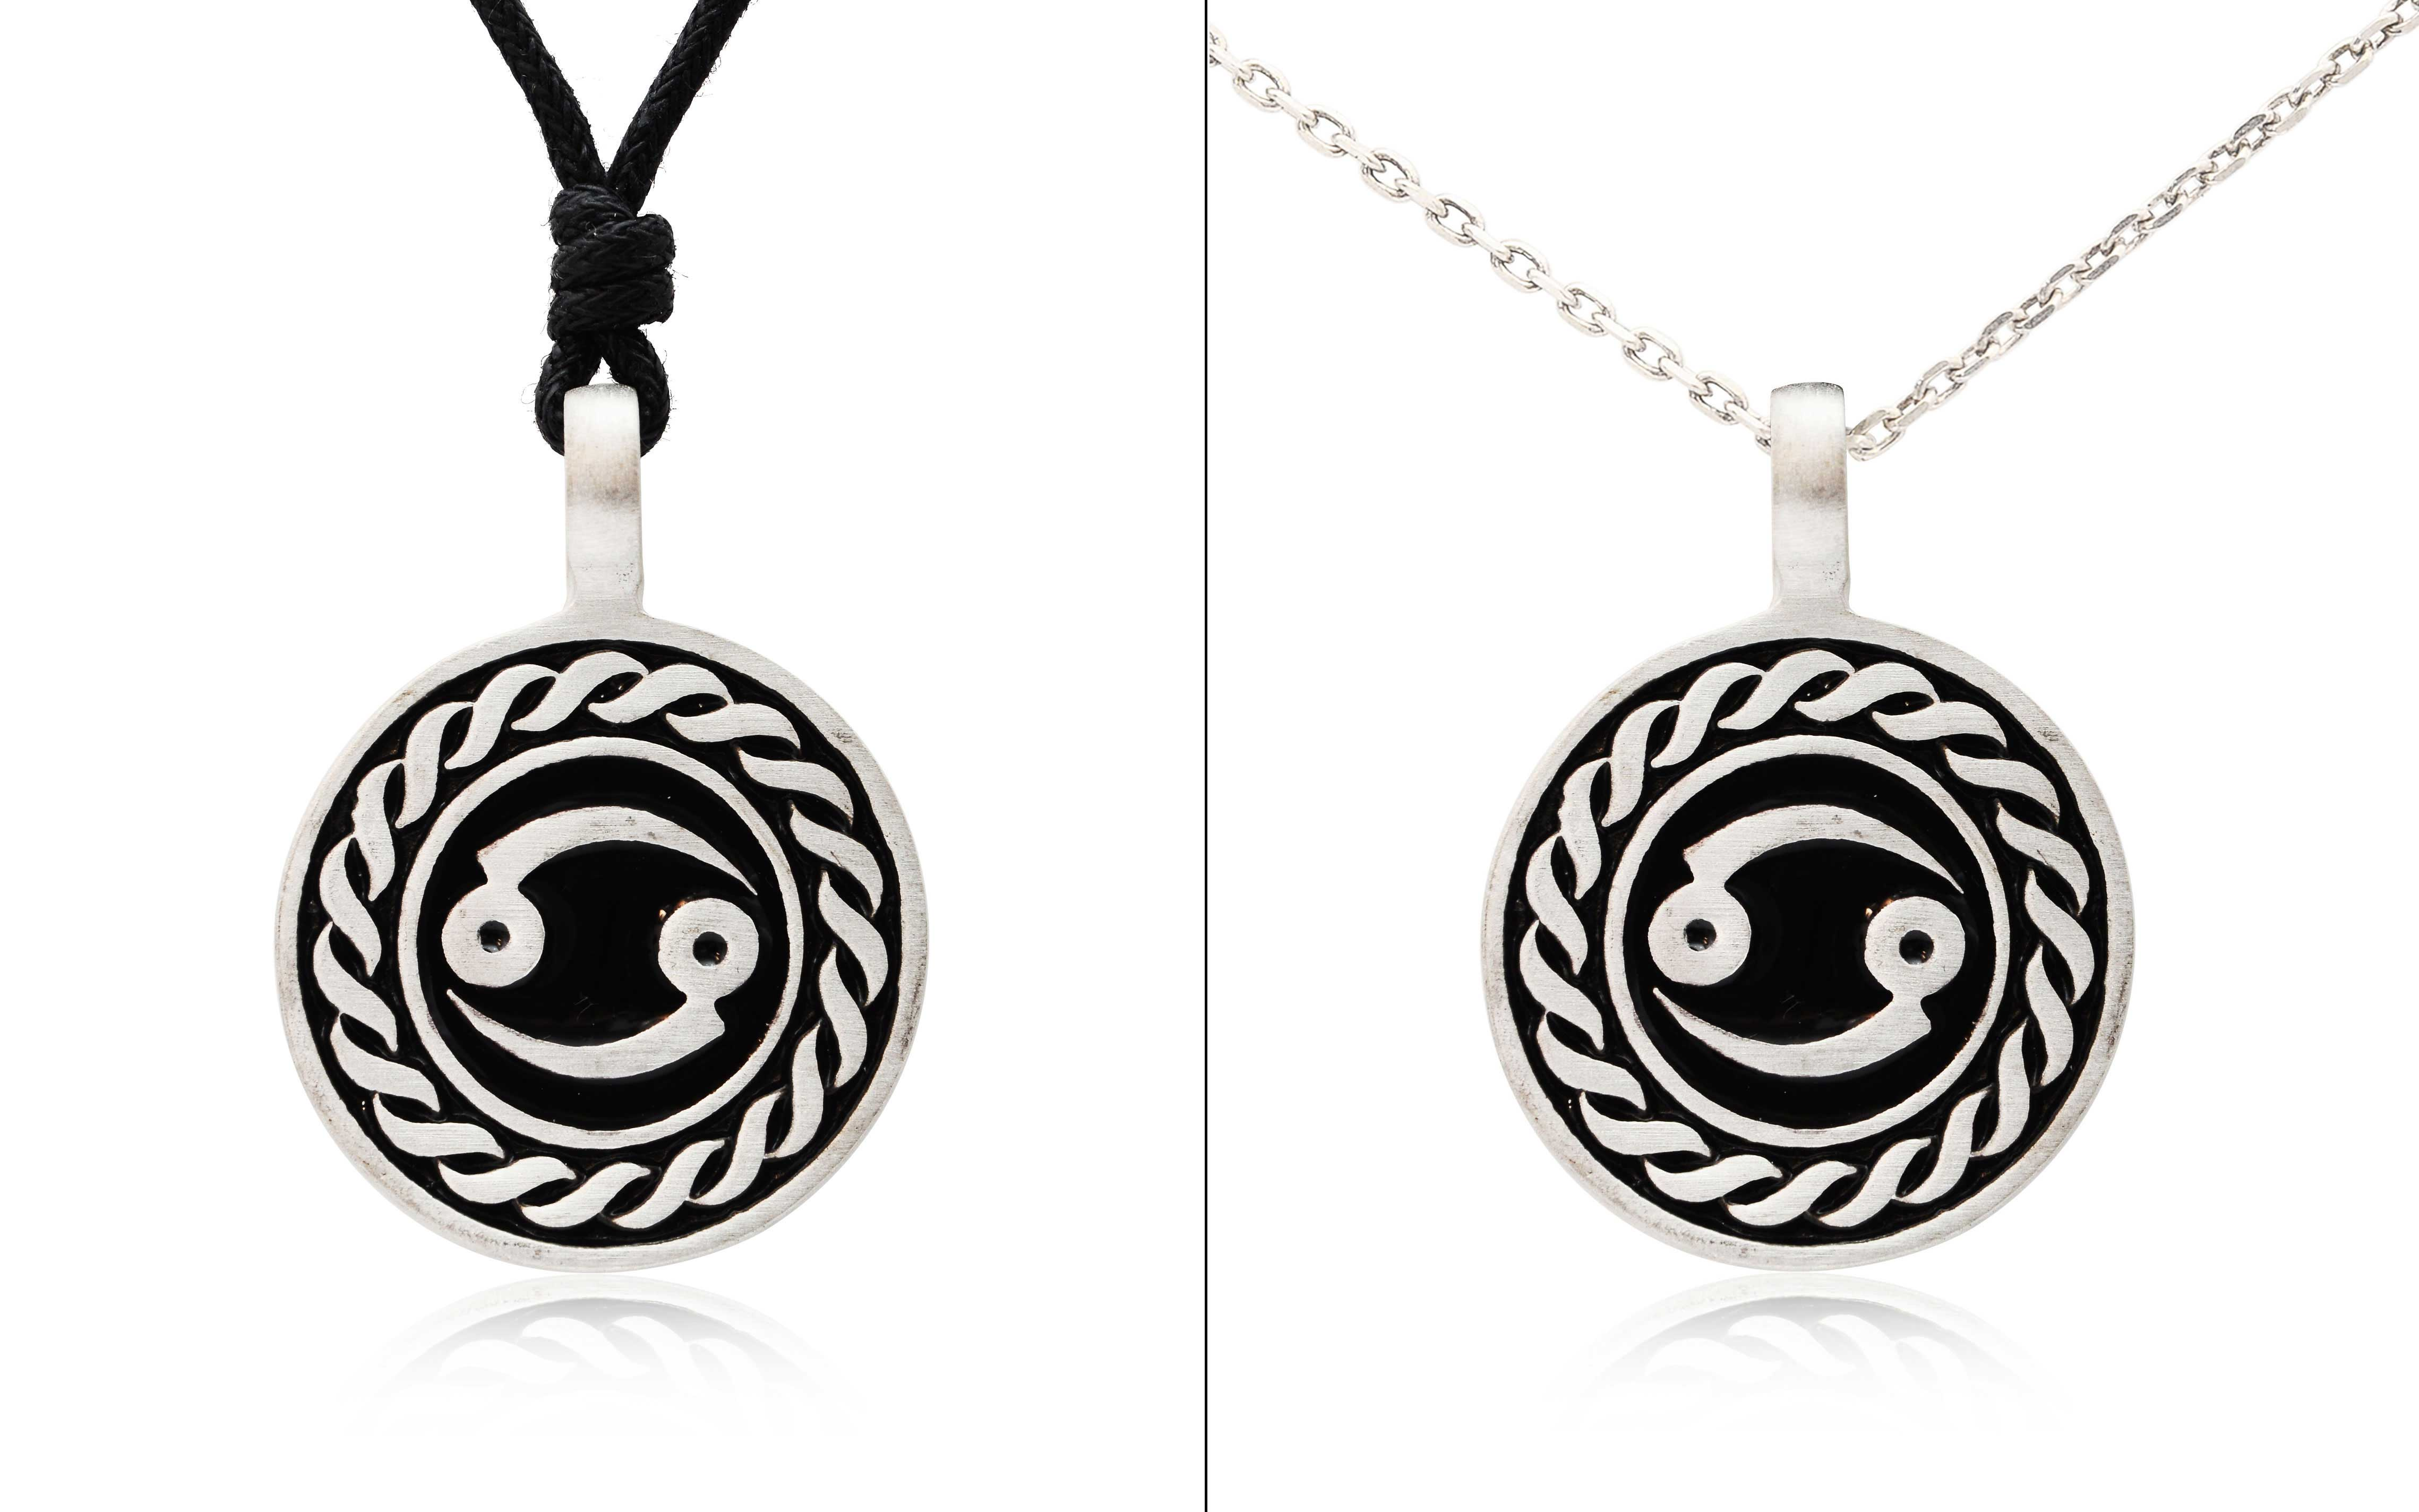 Astrology Sign Horoscope Silver Pewter Charm Necklace ... - photo#41